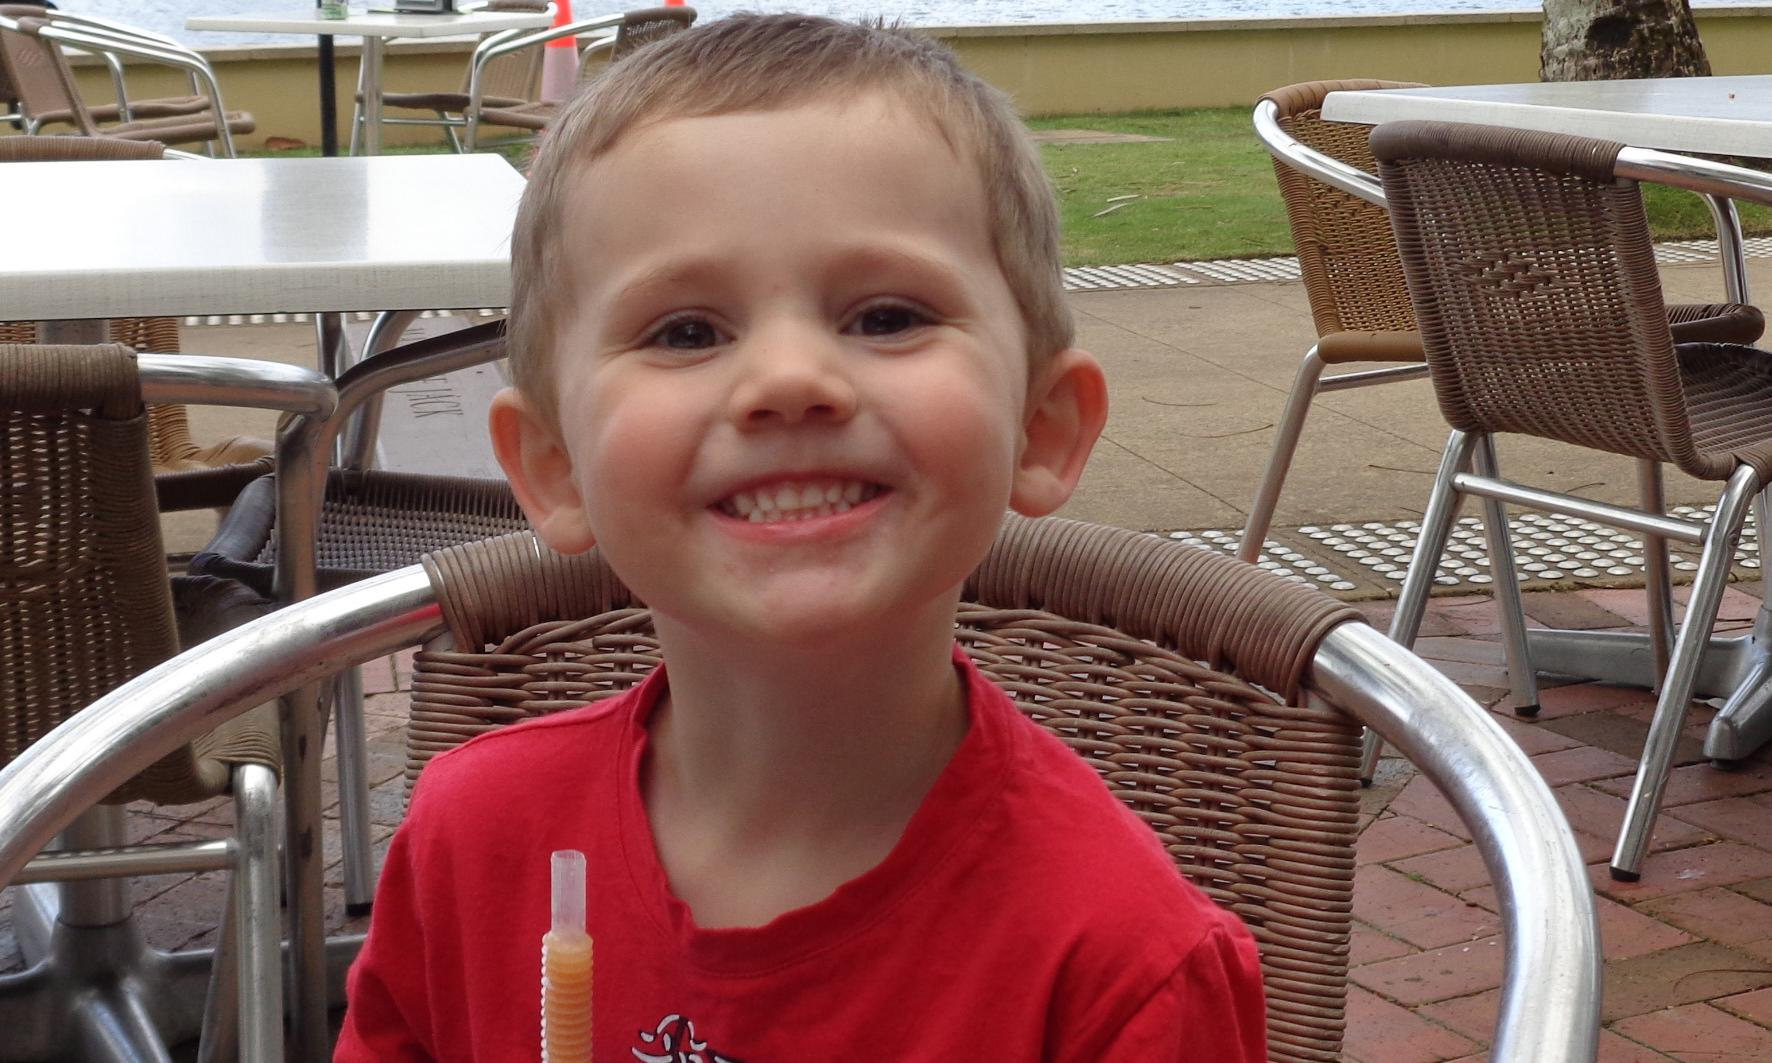 William Tyrrell may still be alive and police pursuing 'active leads', court told